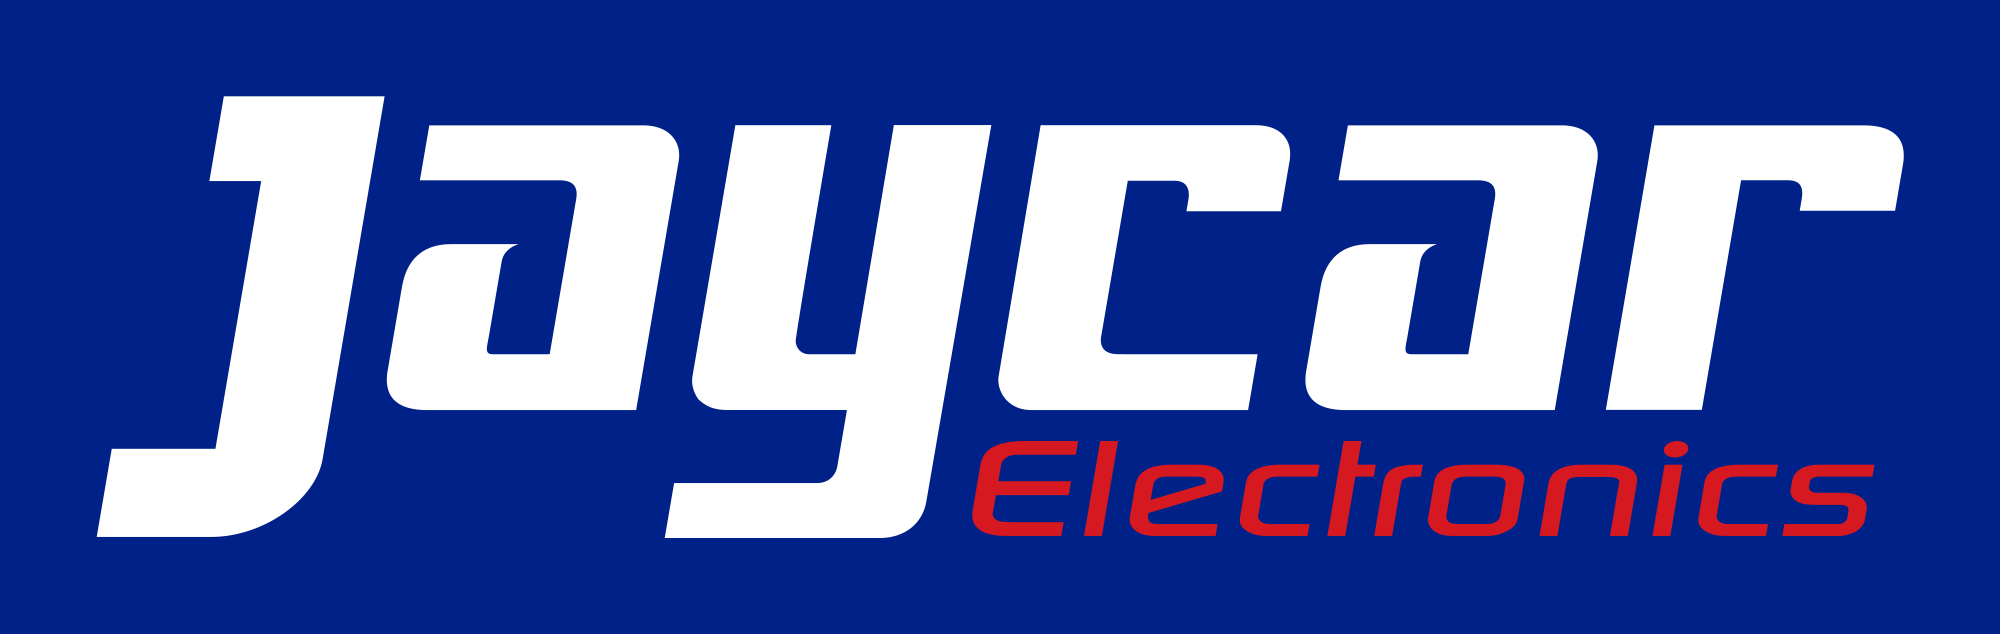 Electronics Store in NSW Hornsby 2077 Jaycar Electronics 130 George Street 0294766221